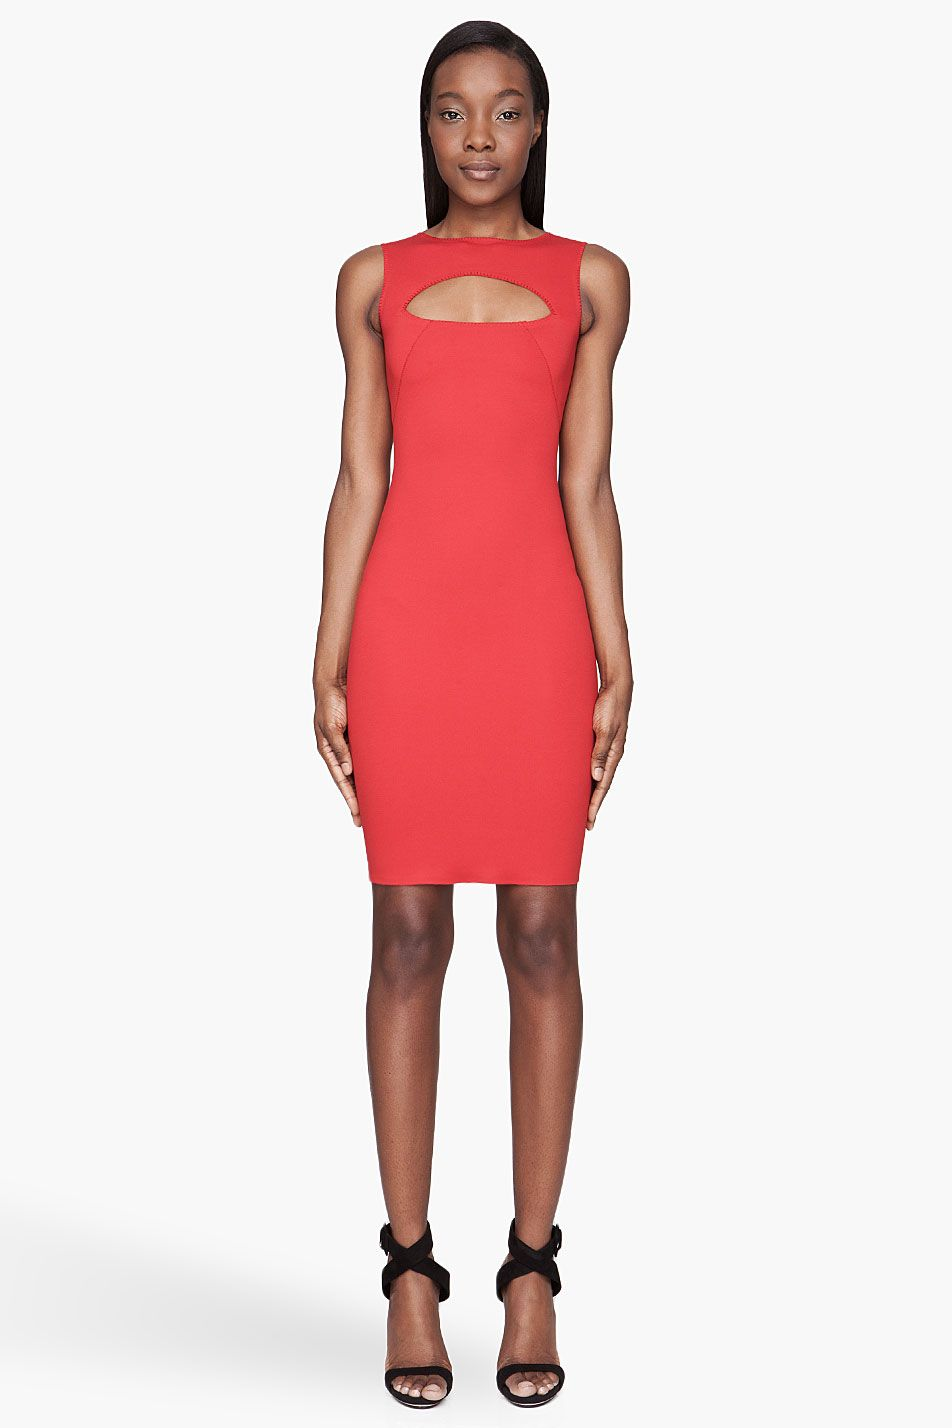 Dsquared red cutout fitted scuba dress resort wear pinterest